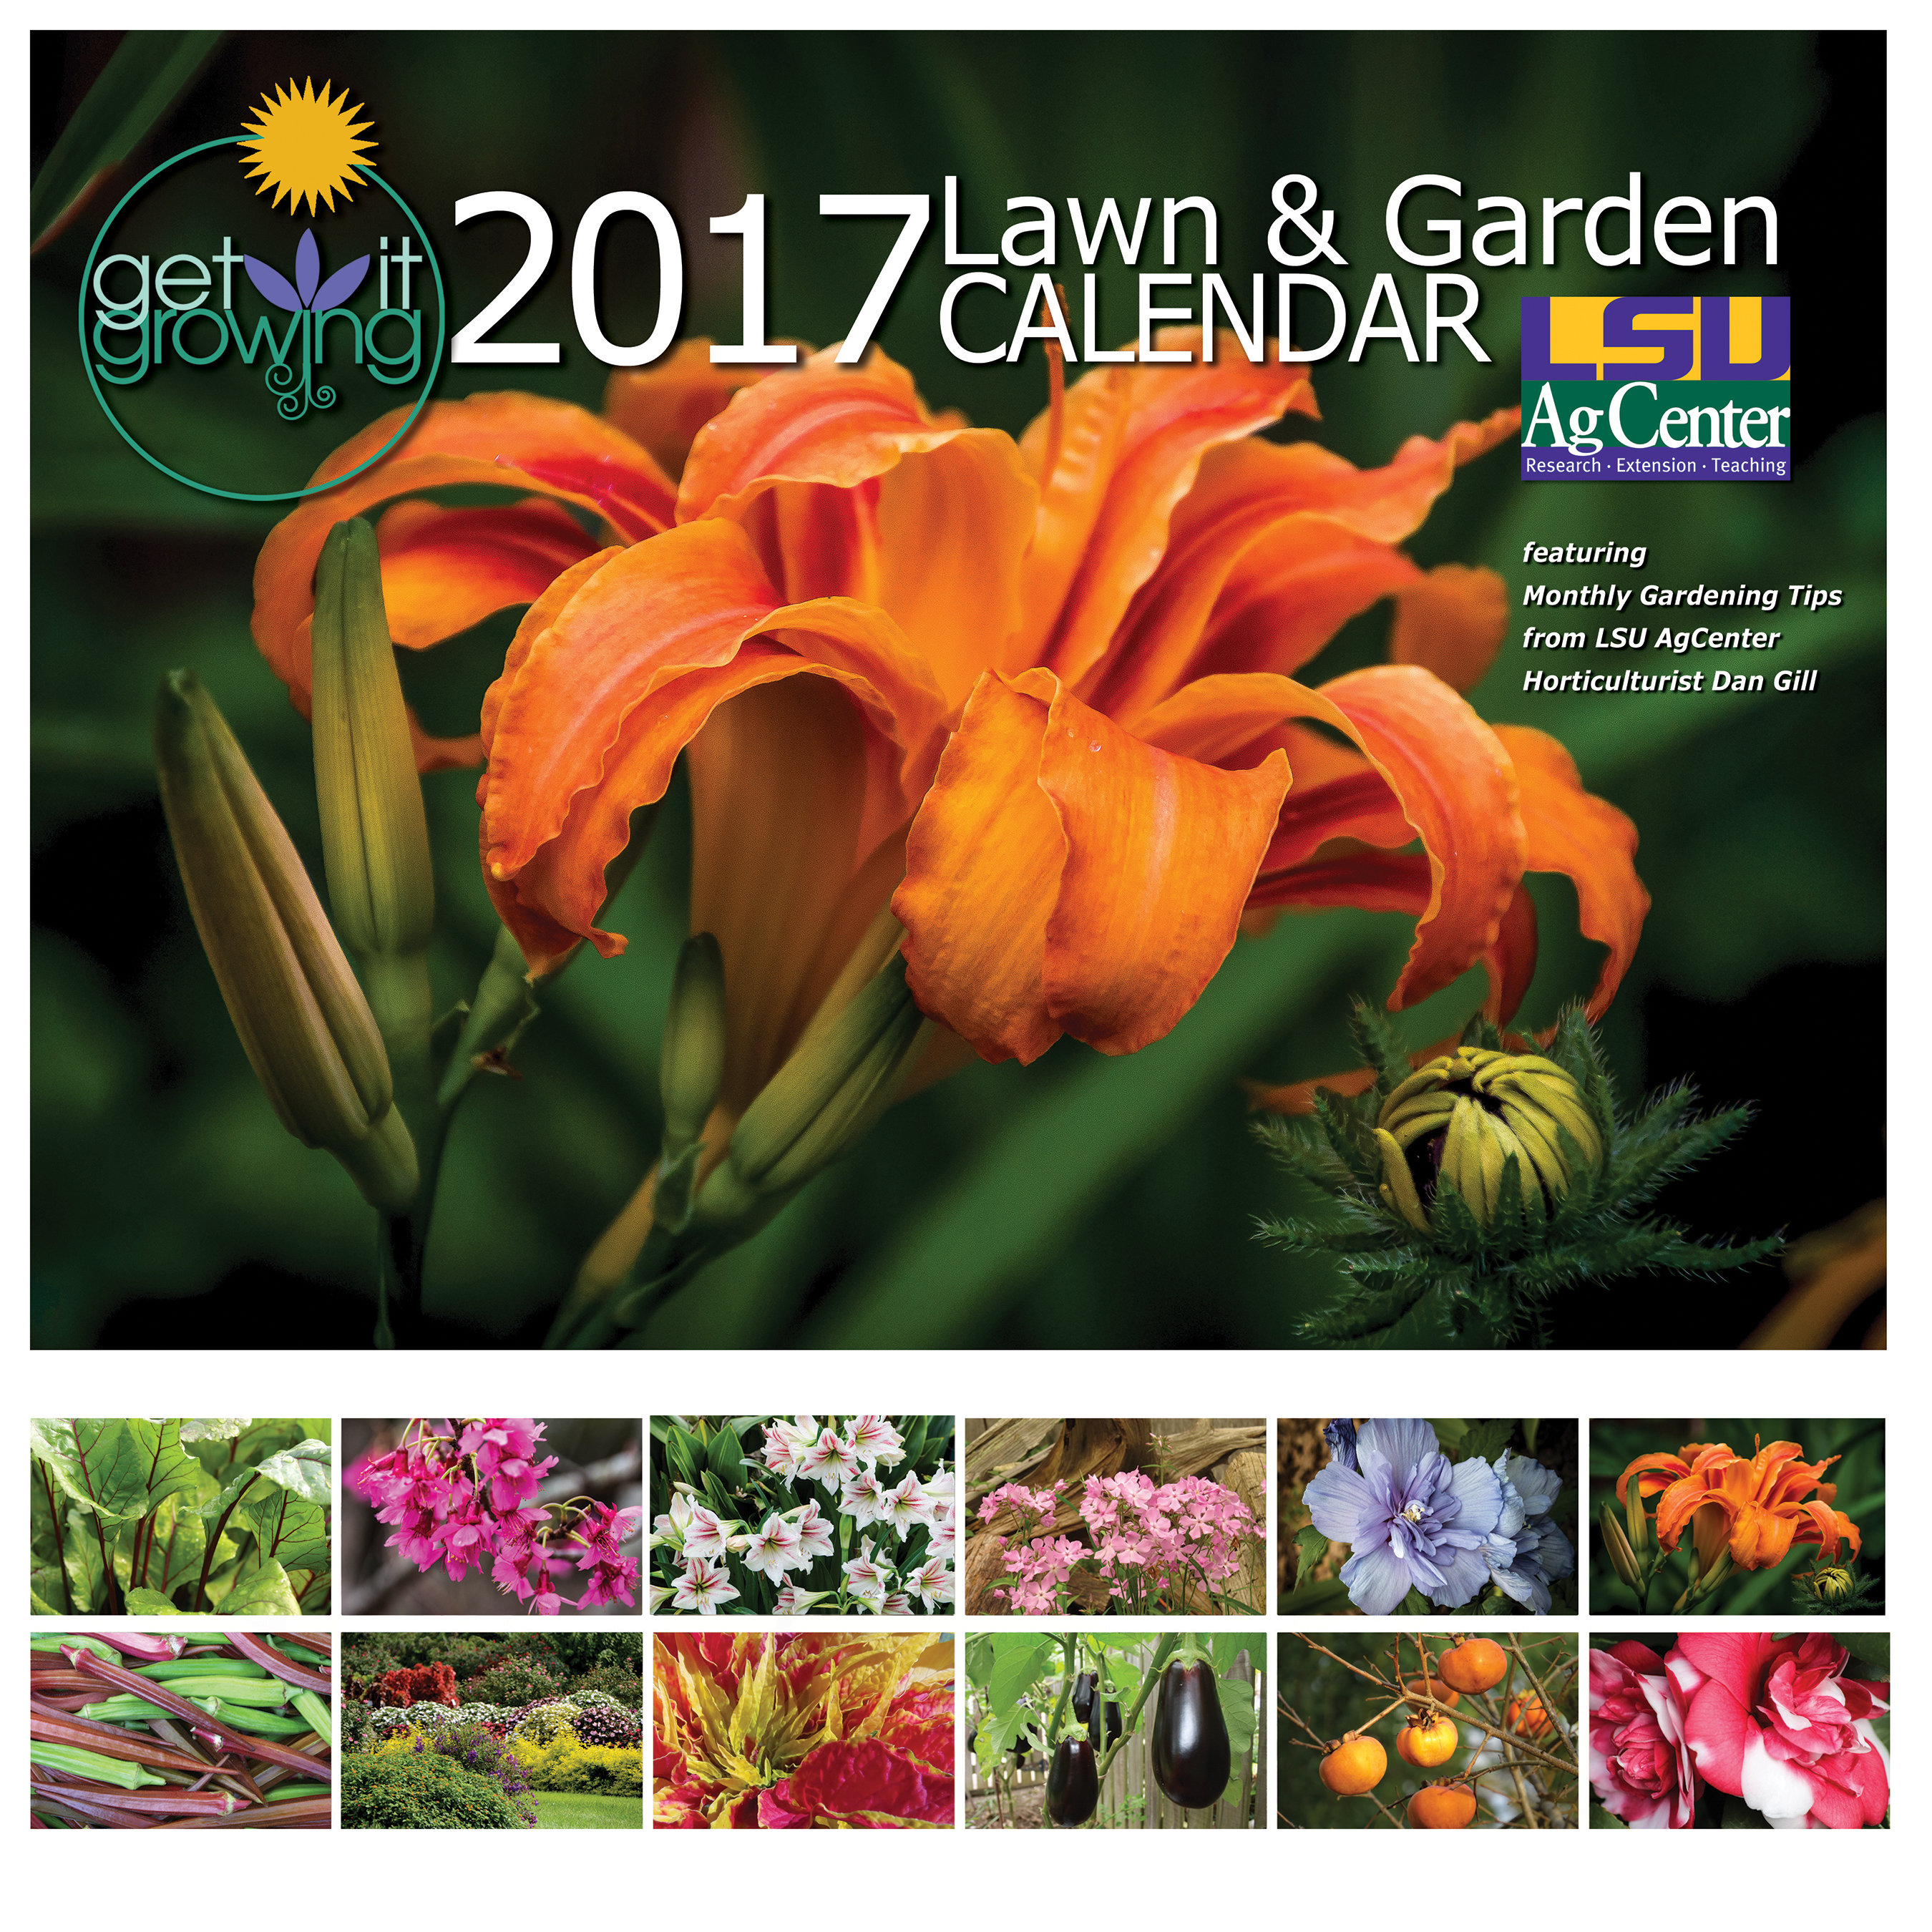 2017 Get It Growing Lawn & Garden Calendar